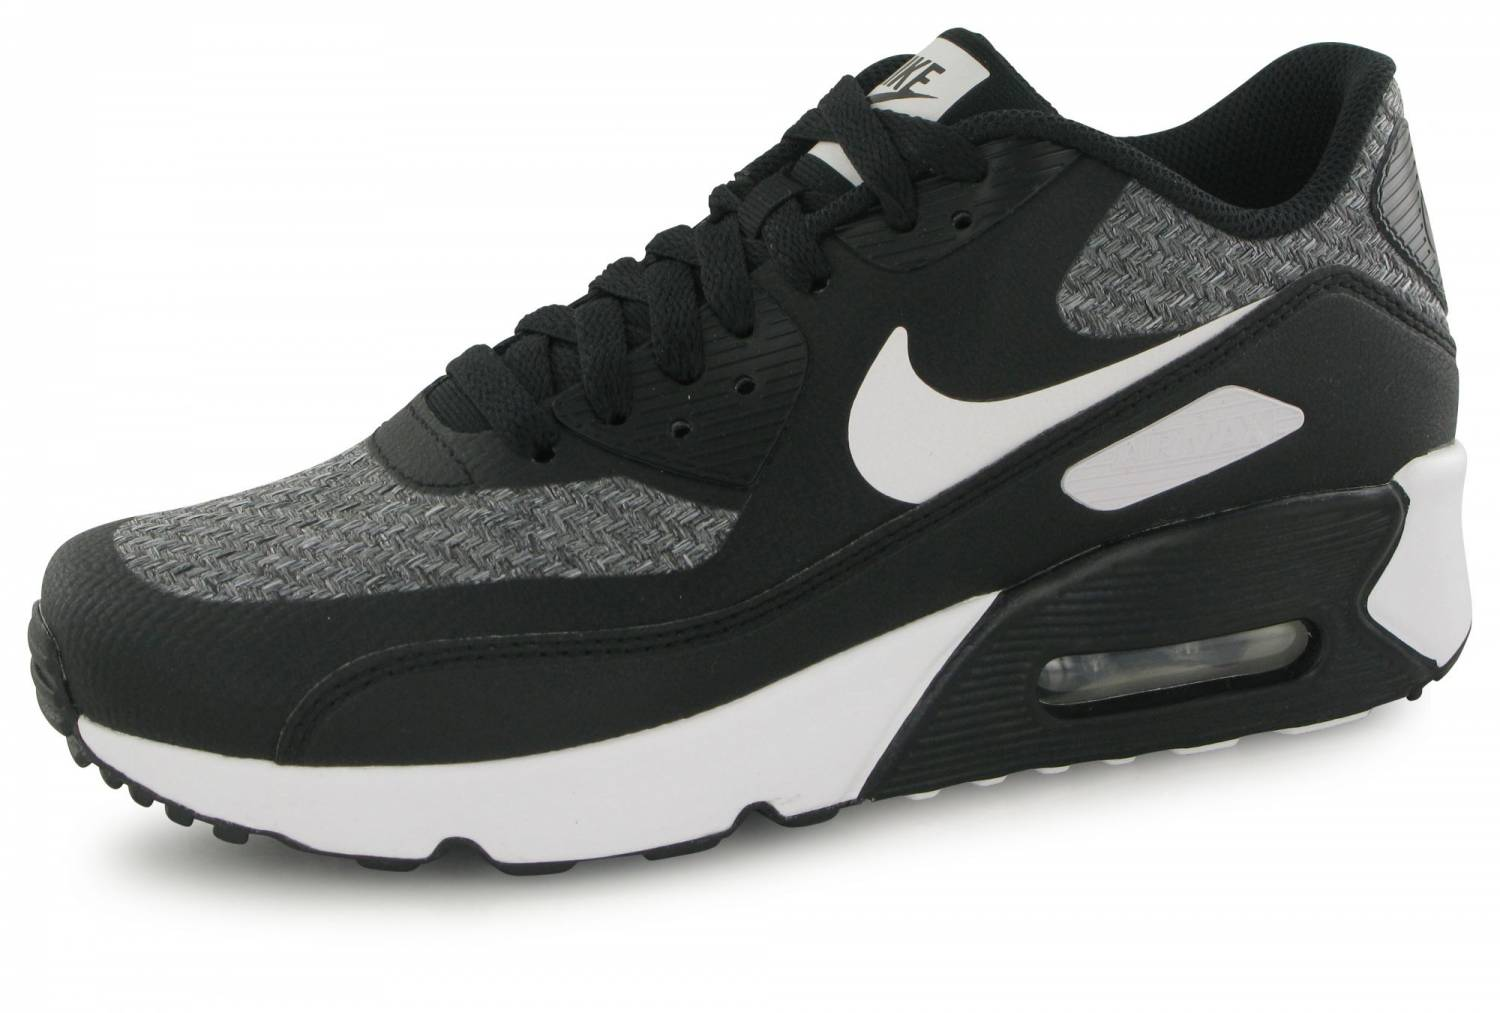 new arrival d8319 b655f Nike Air Max 90 Ultra 2.0 Se Junior Noir   Gris   Blanc